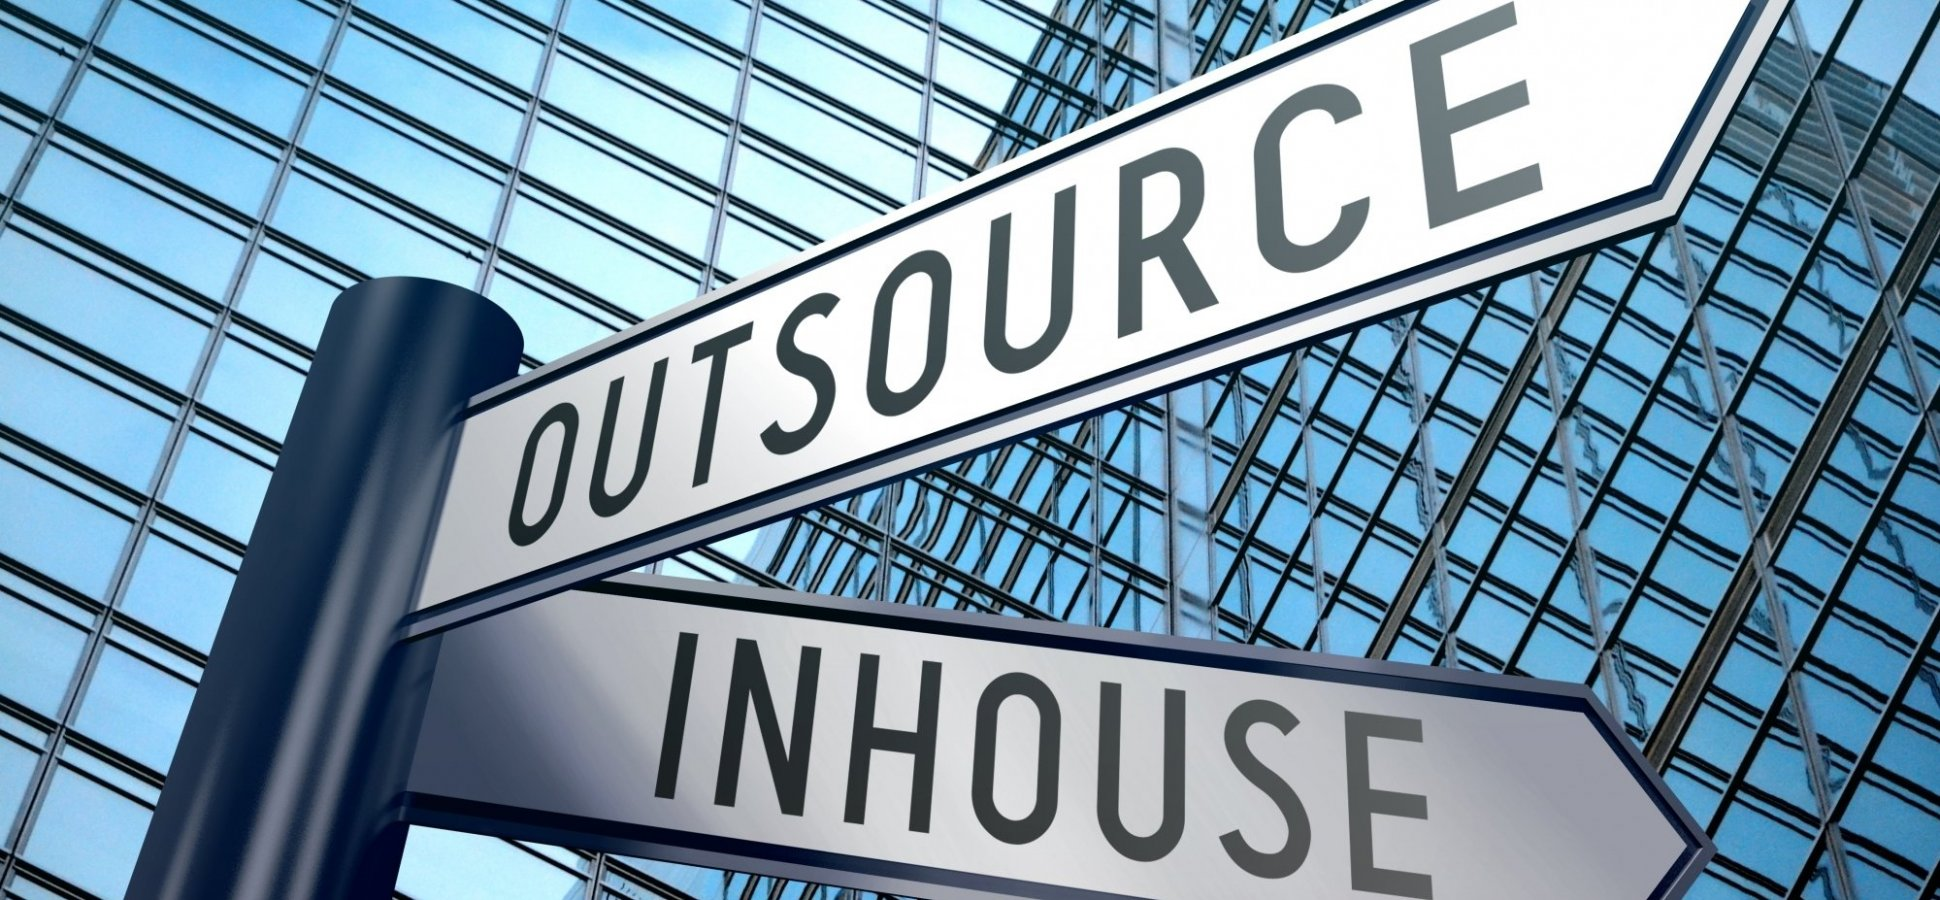 Why Outsourcing Non-Revenue-Generating Tasks Is The Ultimate Growth Hack